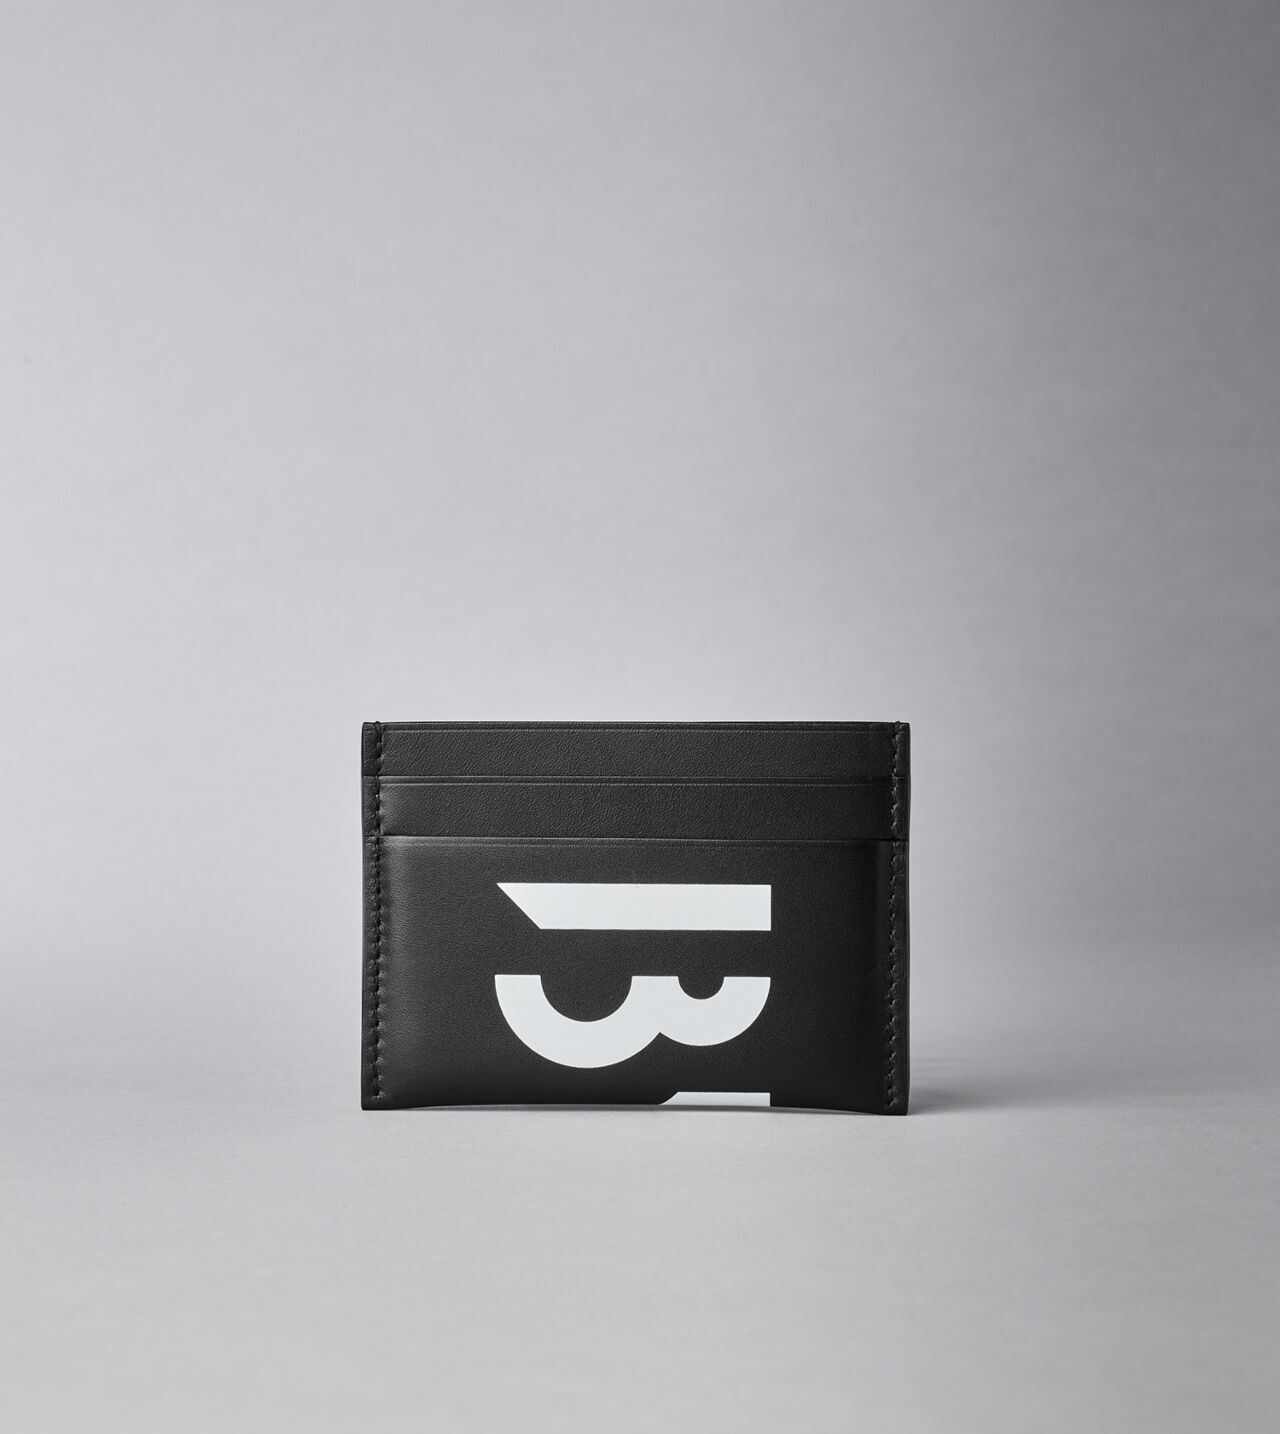 Picture of Byredo Credit card holder in Black leather